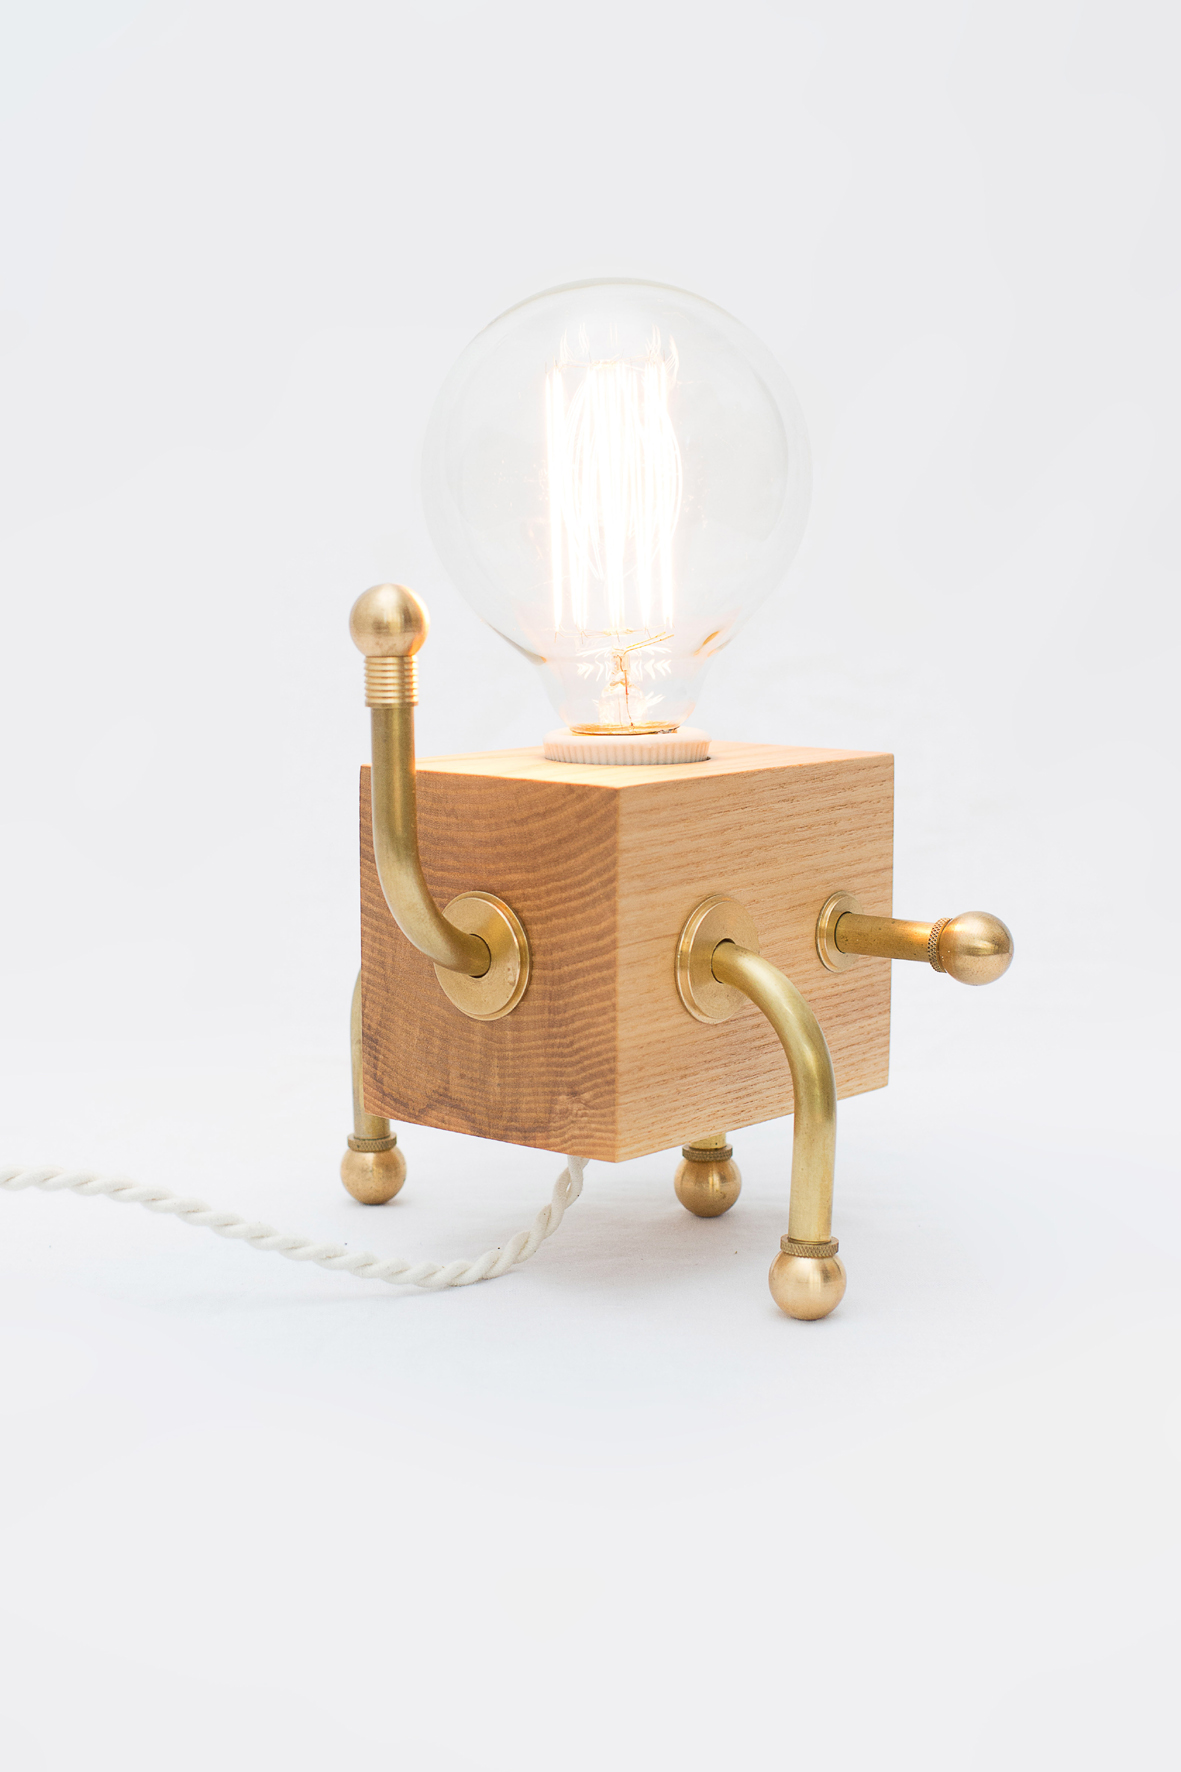 a5_mdba_mdby_manufactured_wood_lamps_antonitoymanolin_frankie